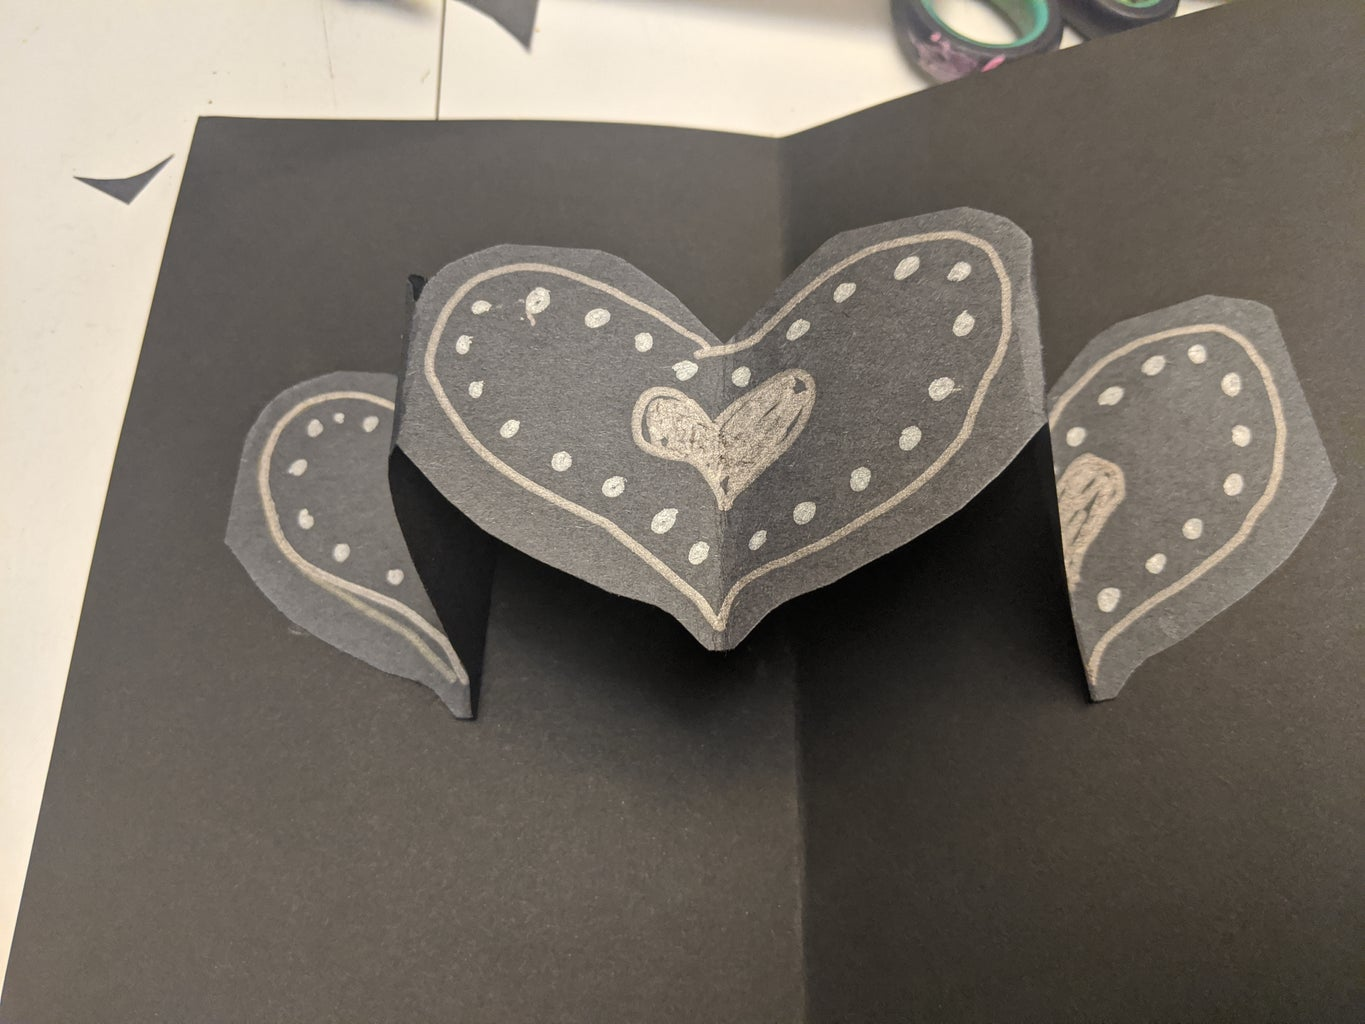 Glue the Heart Chain to the Inside of the Card.